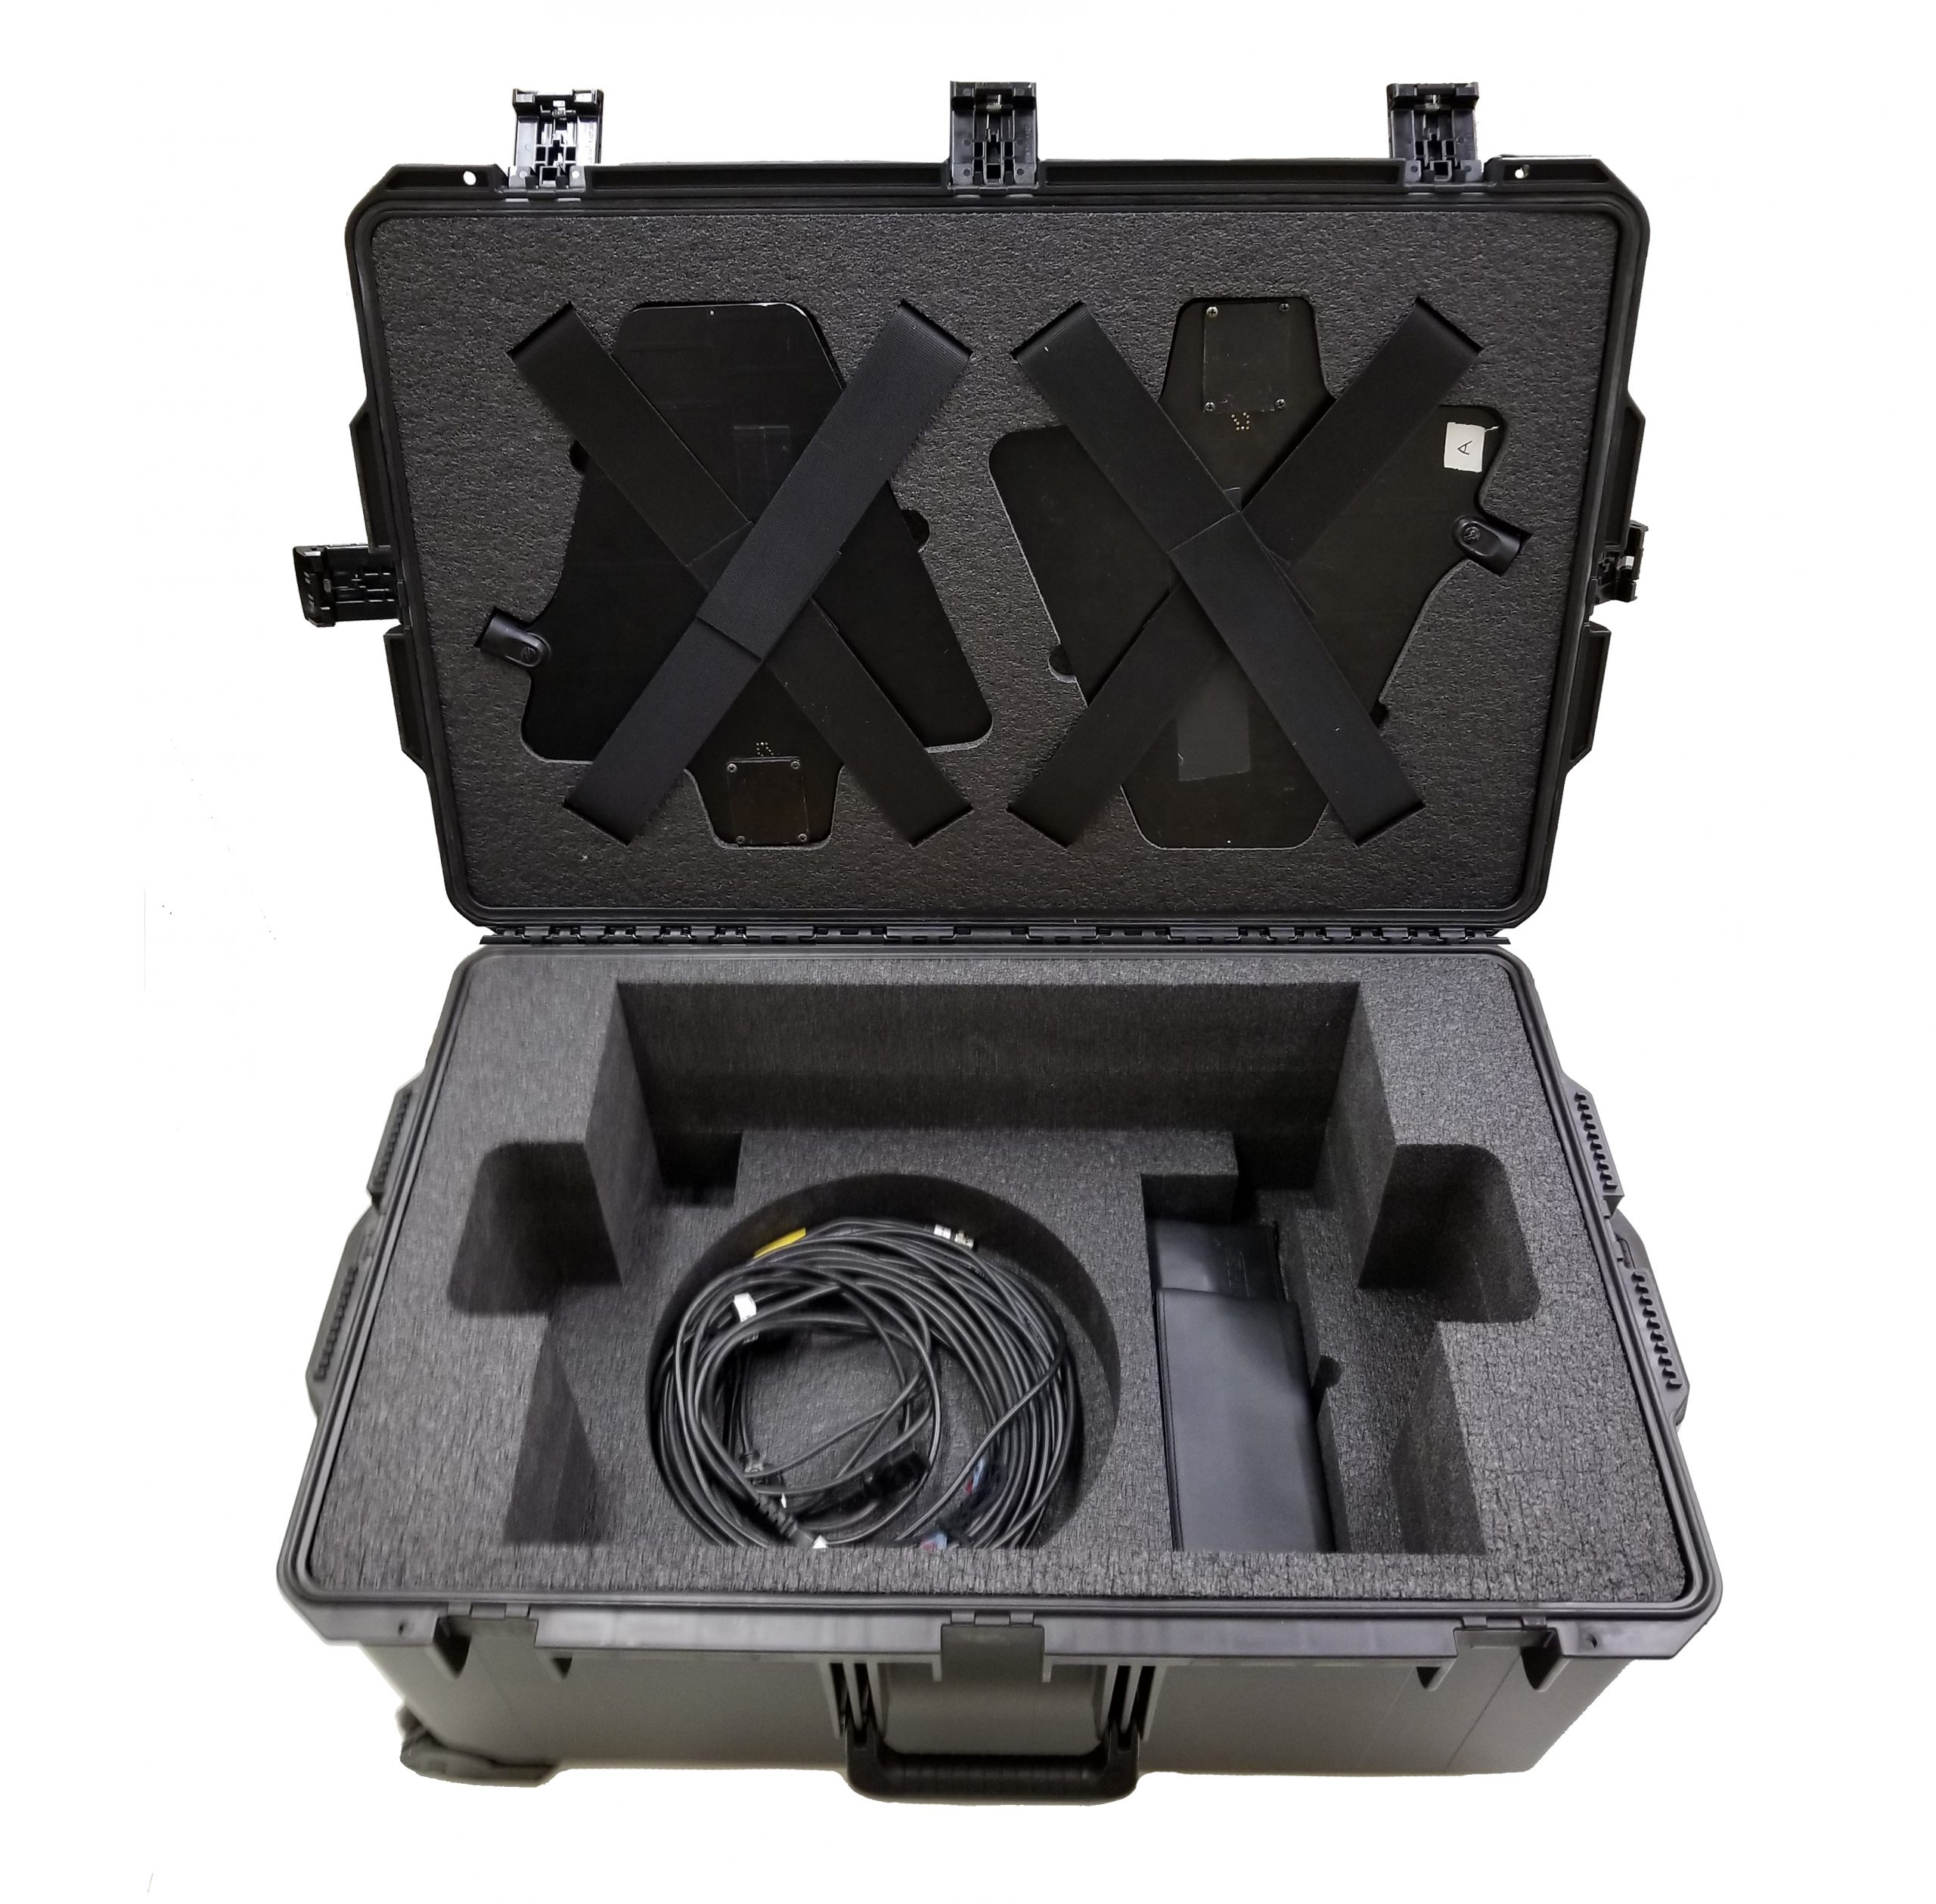 Foam Case Insert for Sound Recording and Microphone Receivers